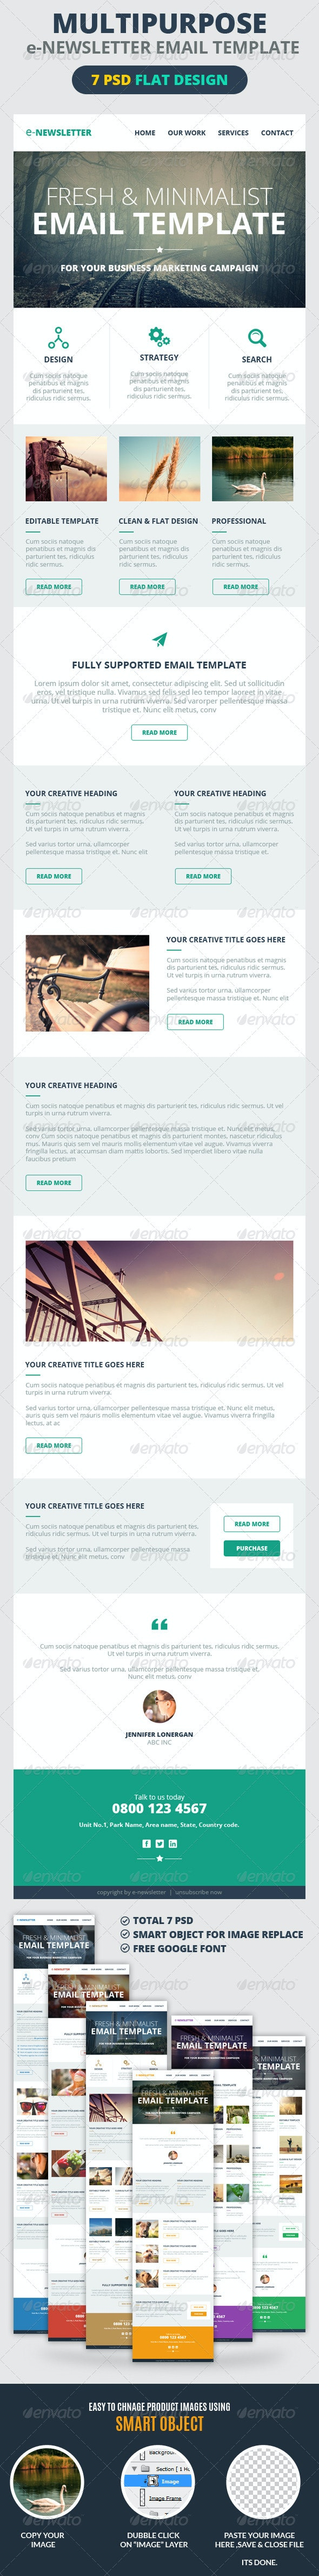 Multipurpose E-Newsletter Email Template